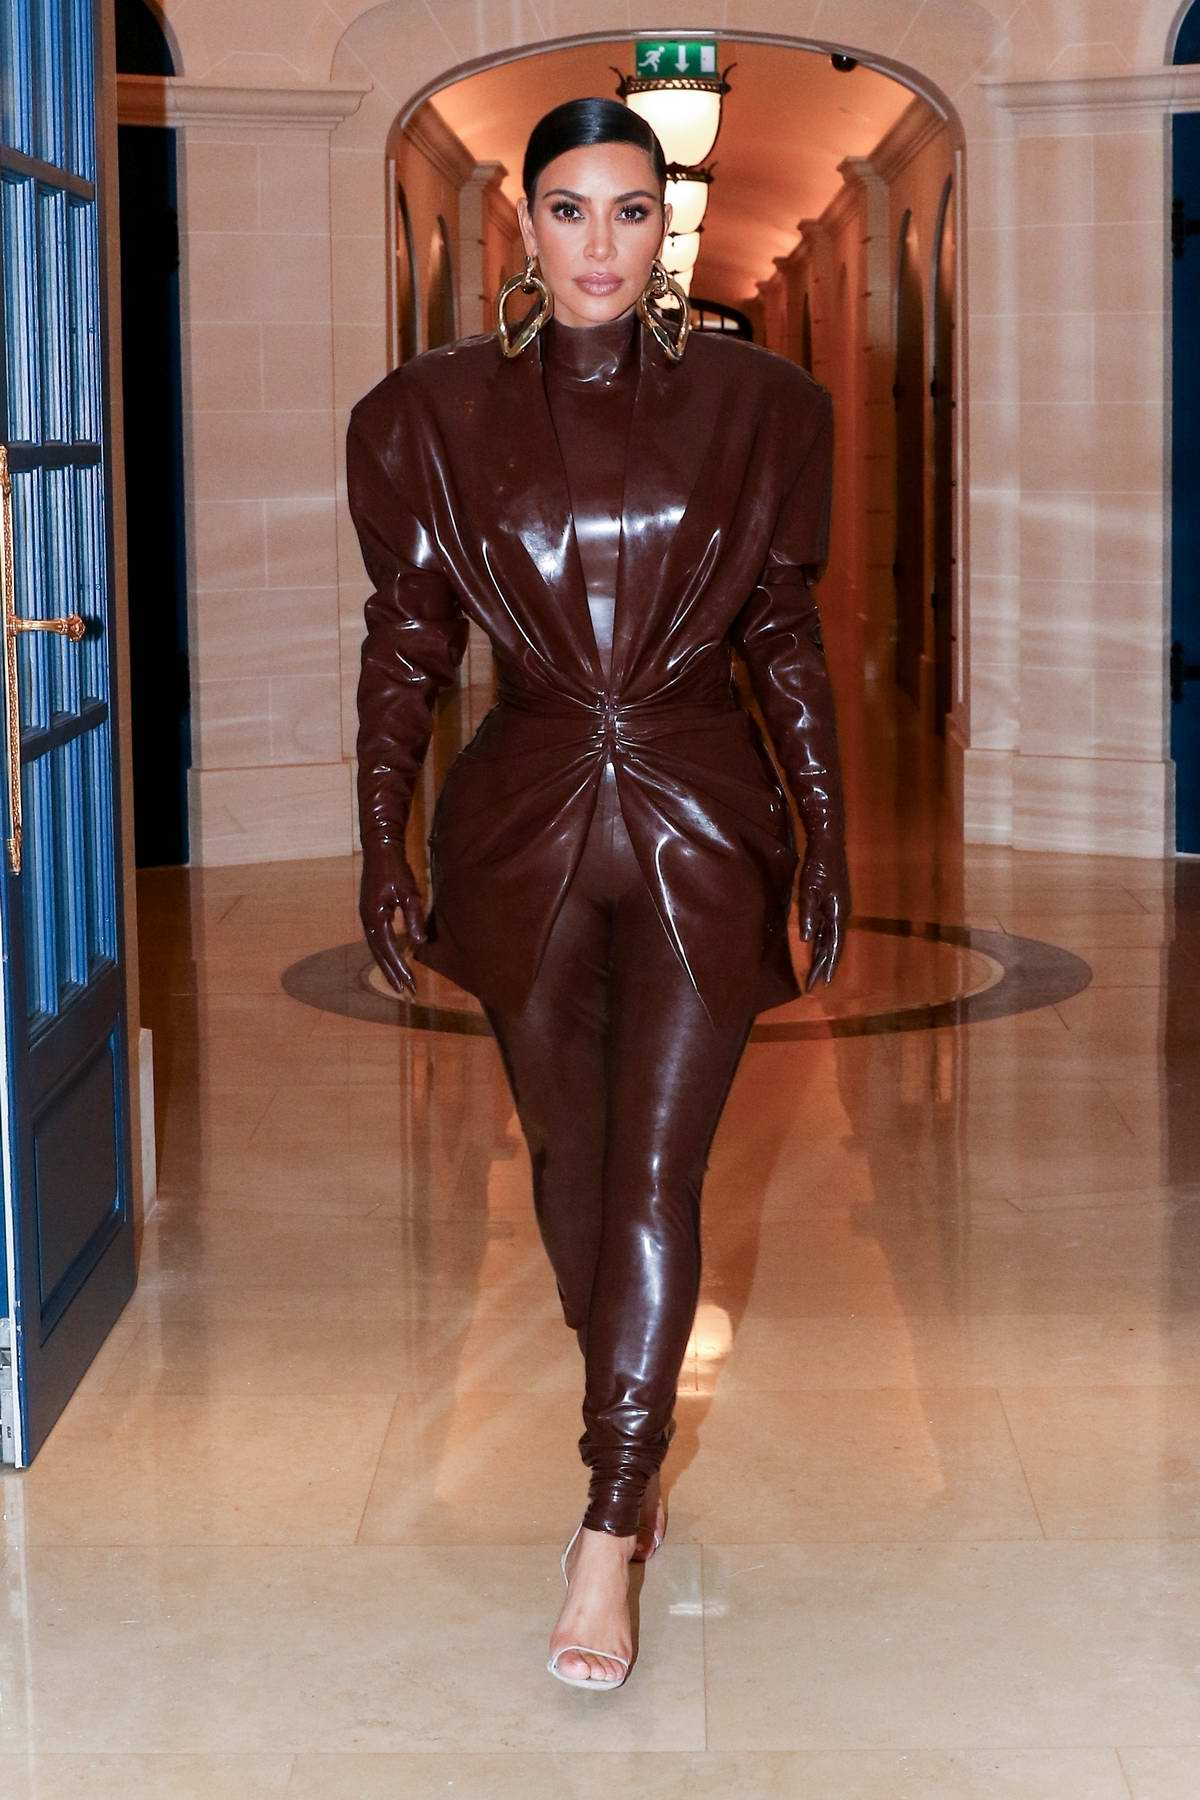 Kim Kardashian sports her second Balmain latex outfit of the day as she leaves her hotel in Paris, France